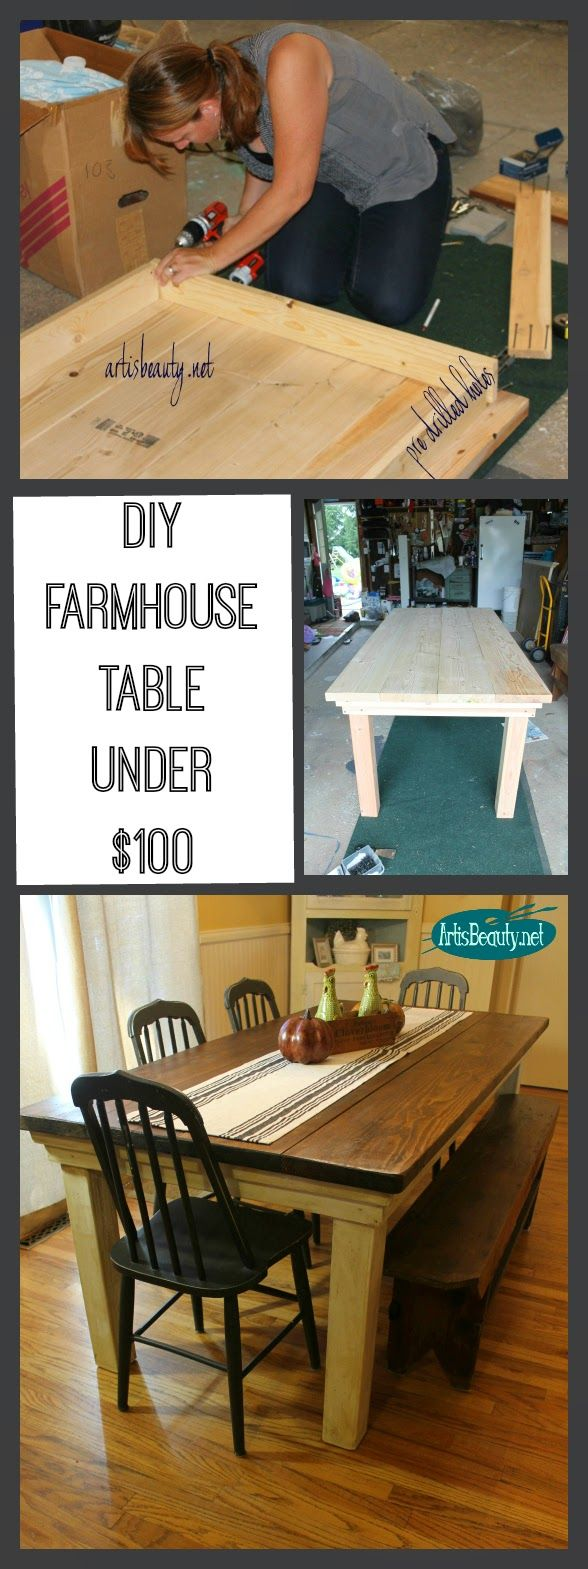 How To Build Your Own Farmhouse Table For Under 100 Diy